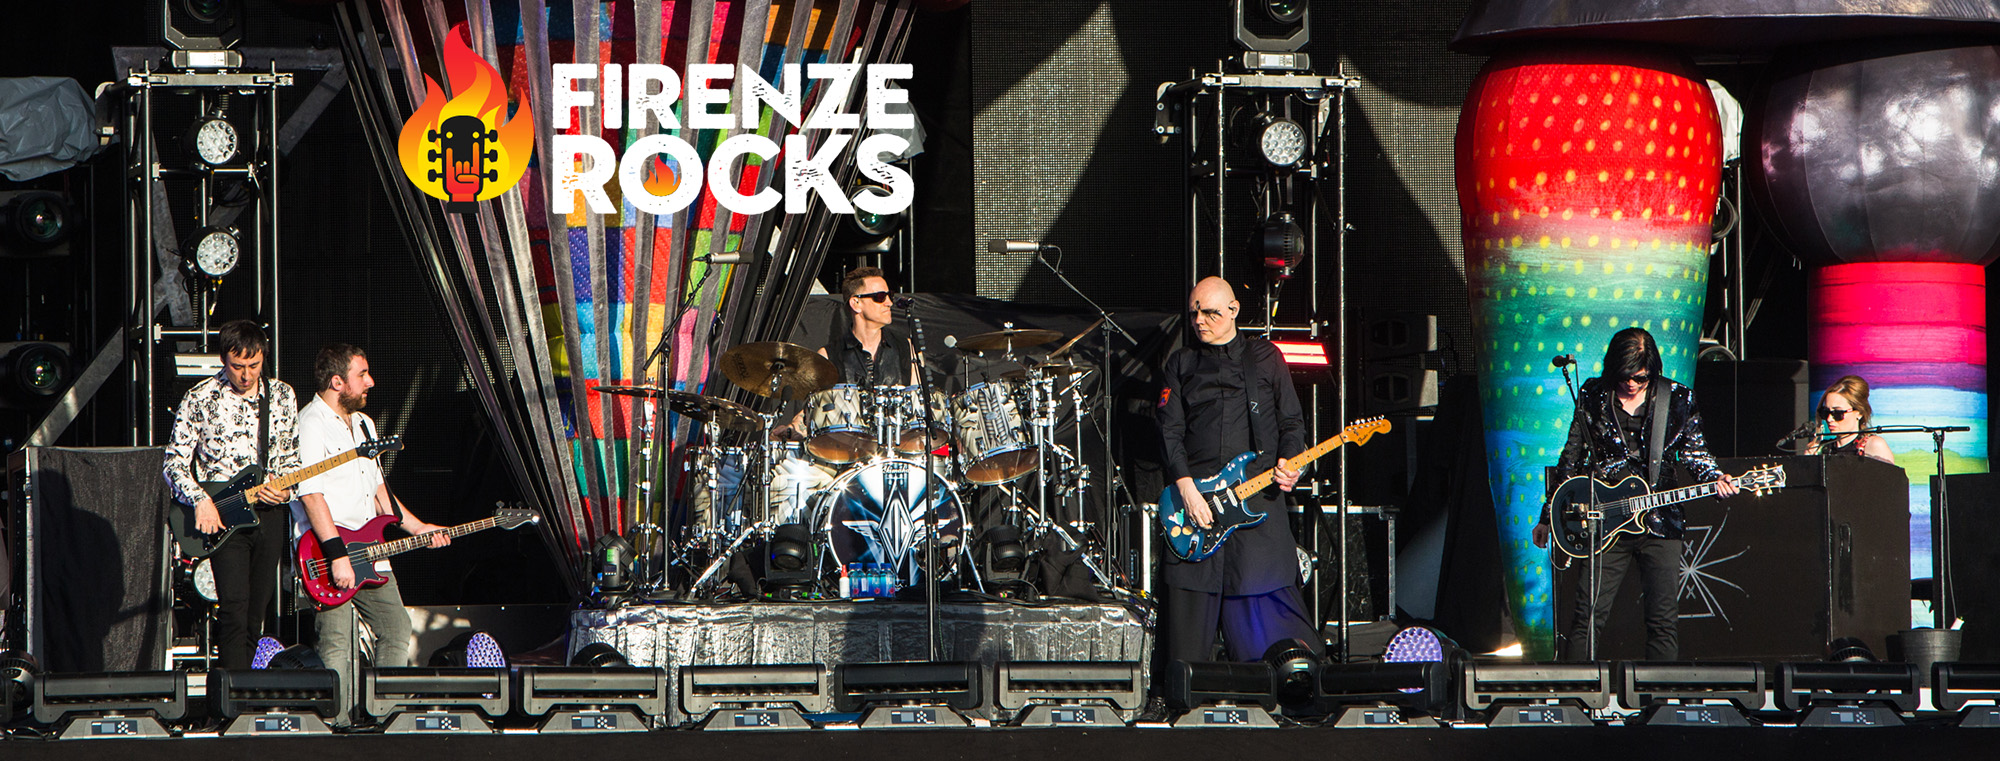 Rocks and Shots al Firenze Rocks 2019